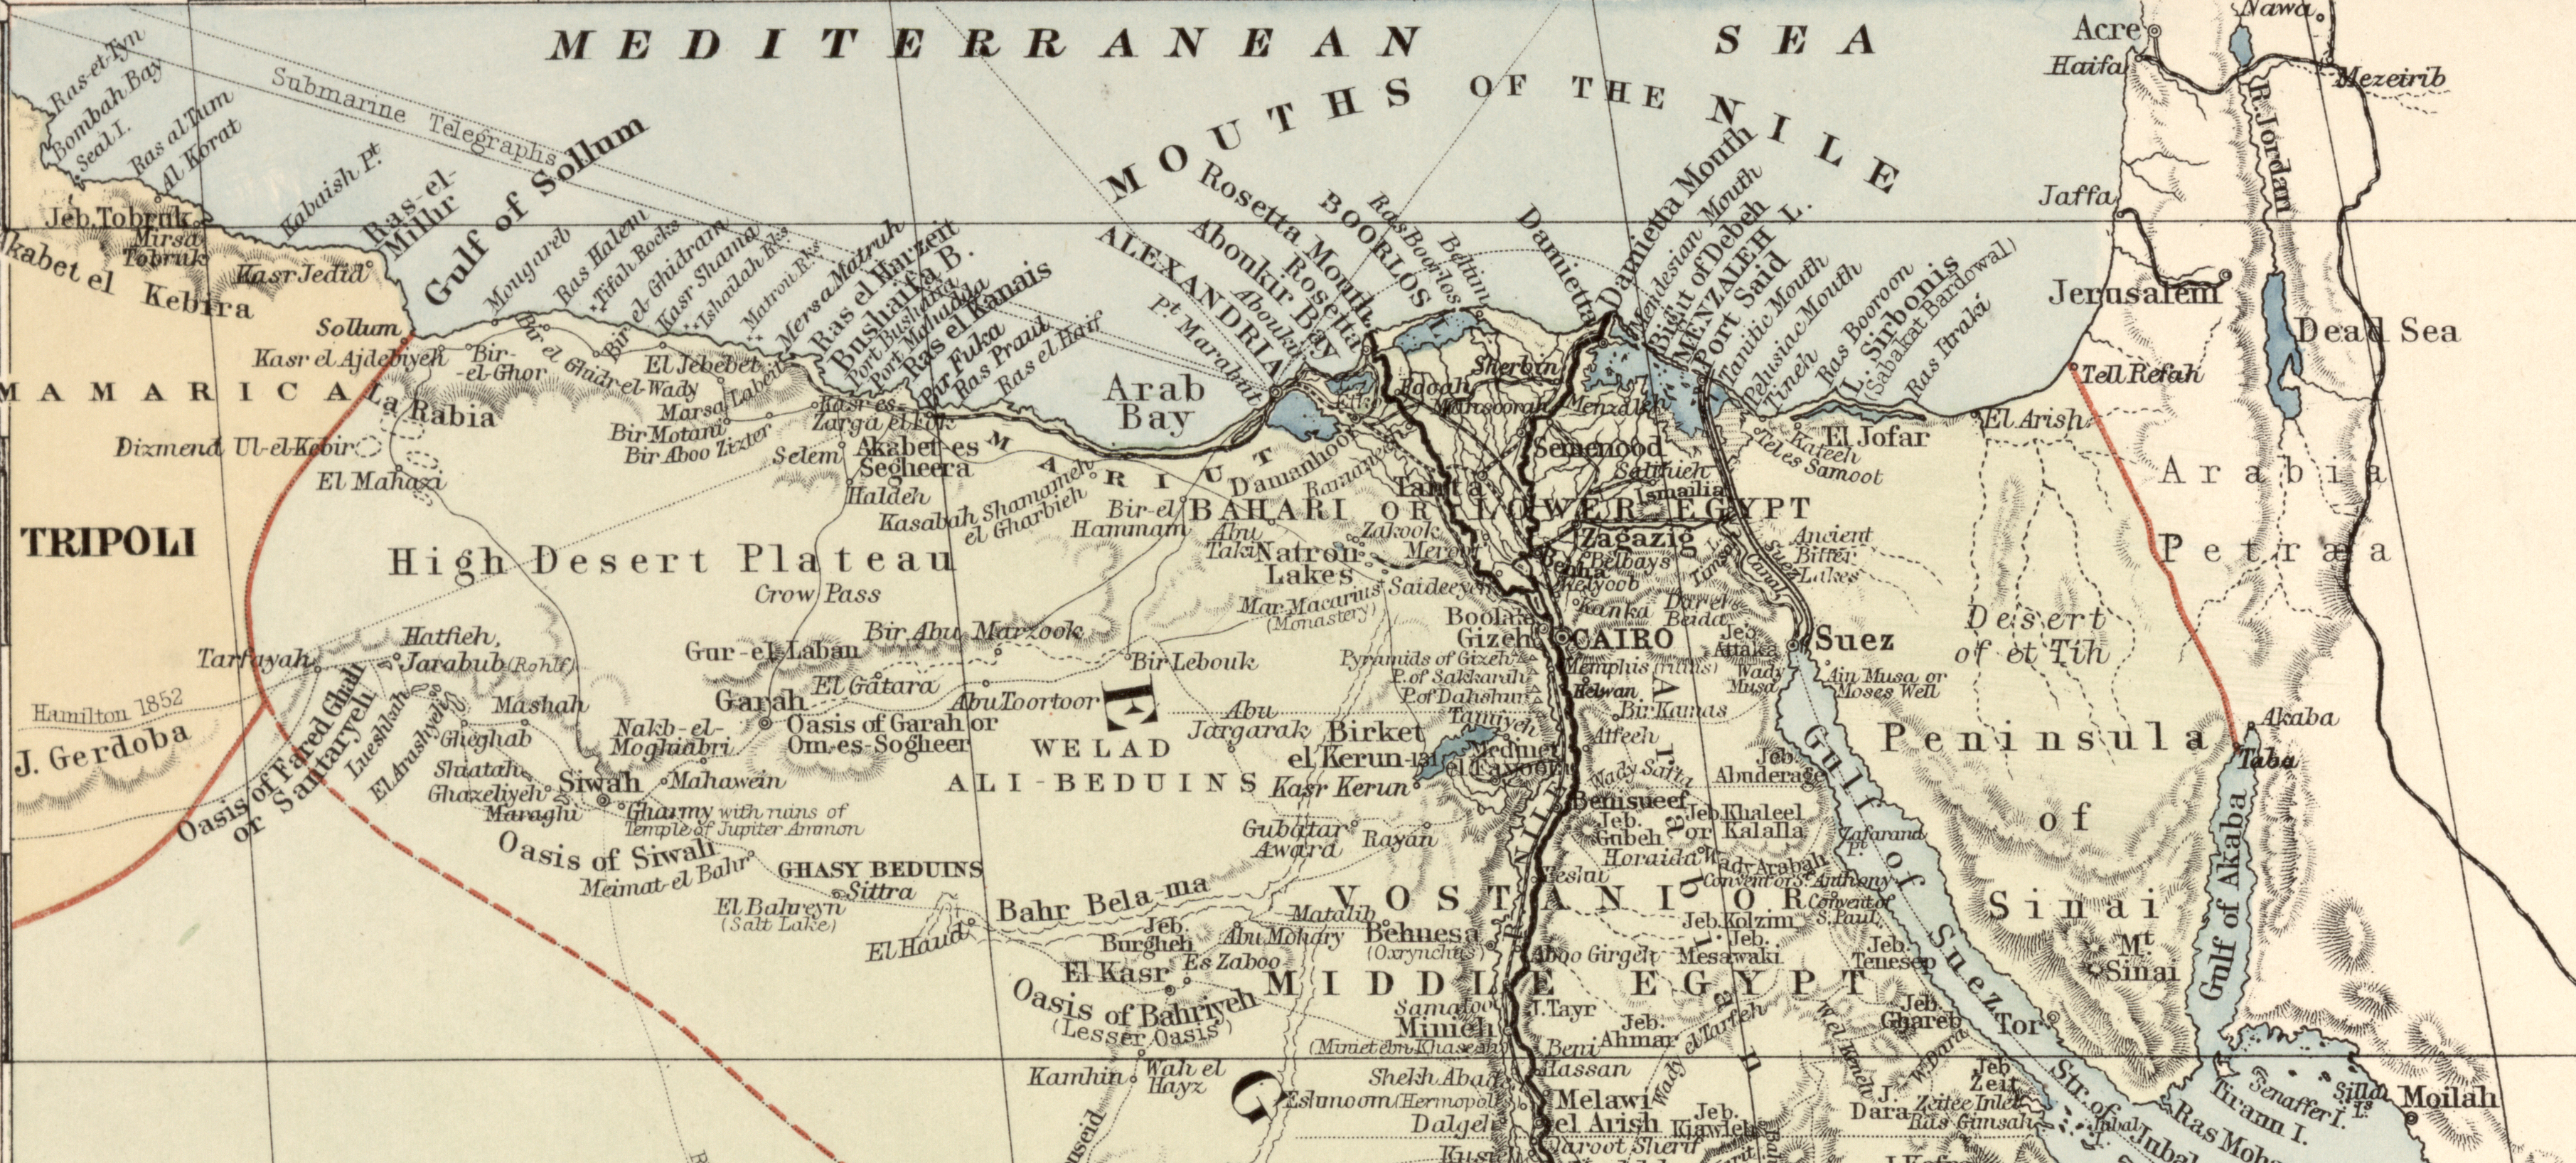 London Atlas Map of the Nile Valley. London: E. Stanford [ca 1910]. Library of Congress Geography and Map Division.